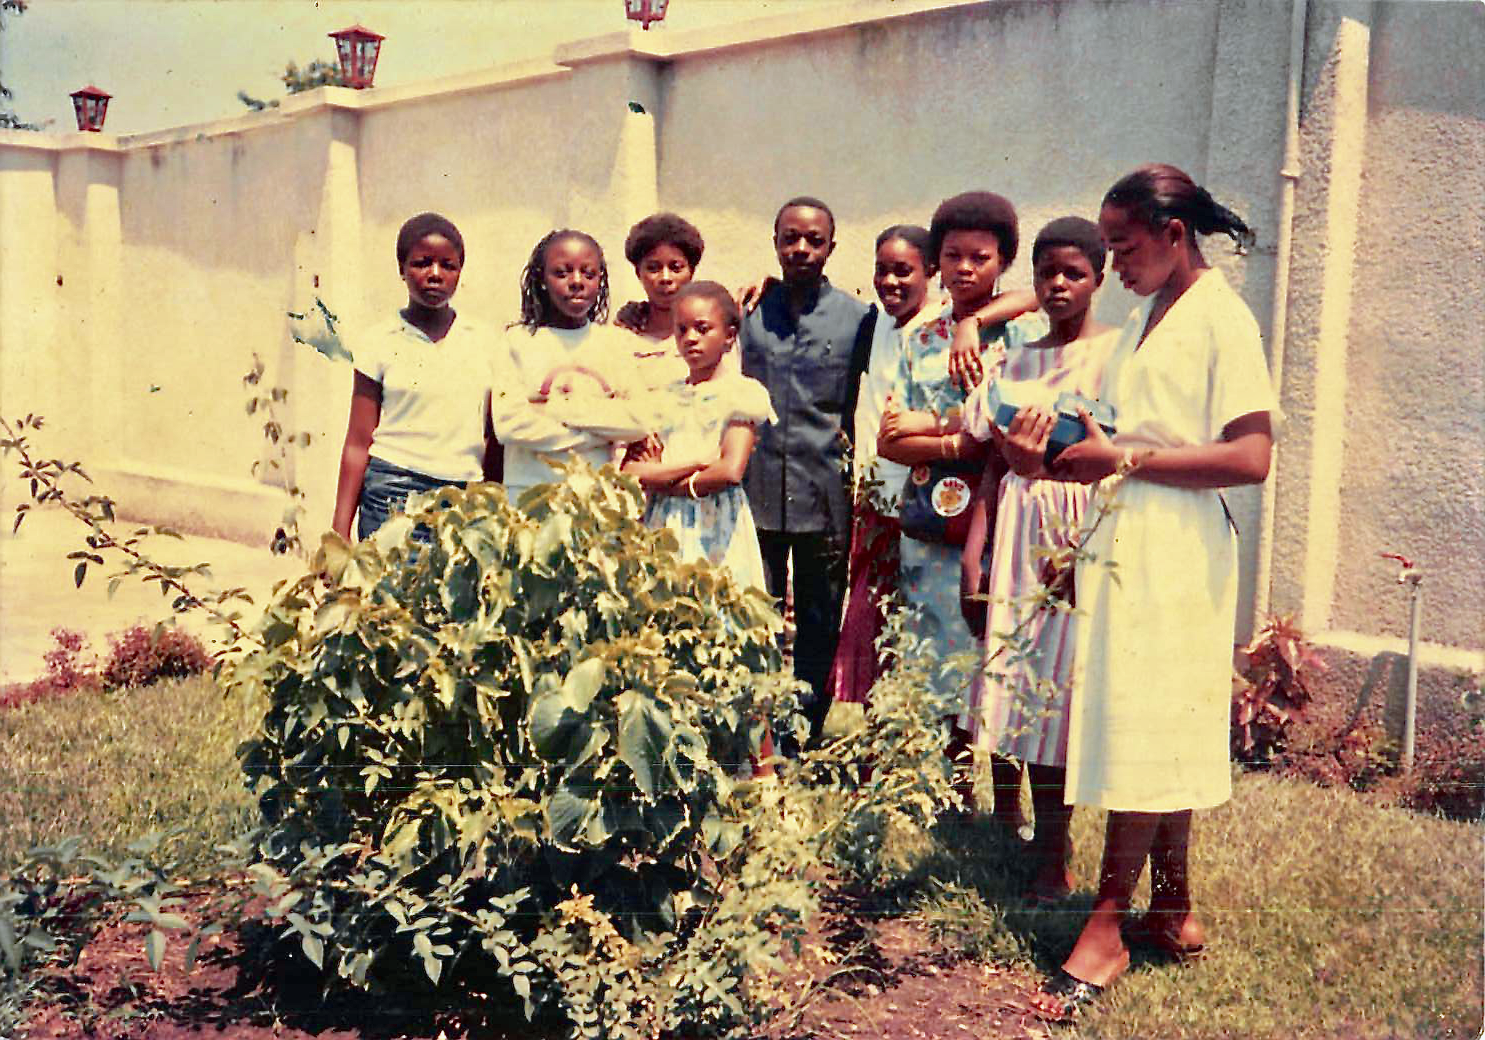 Young women of Liméte Banch in January 1987 in Zaire (now the Democratic Republic of the Congo).